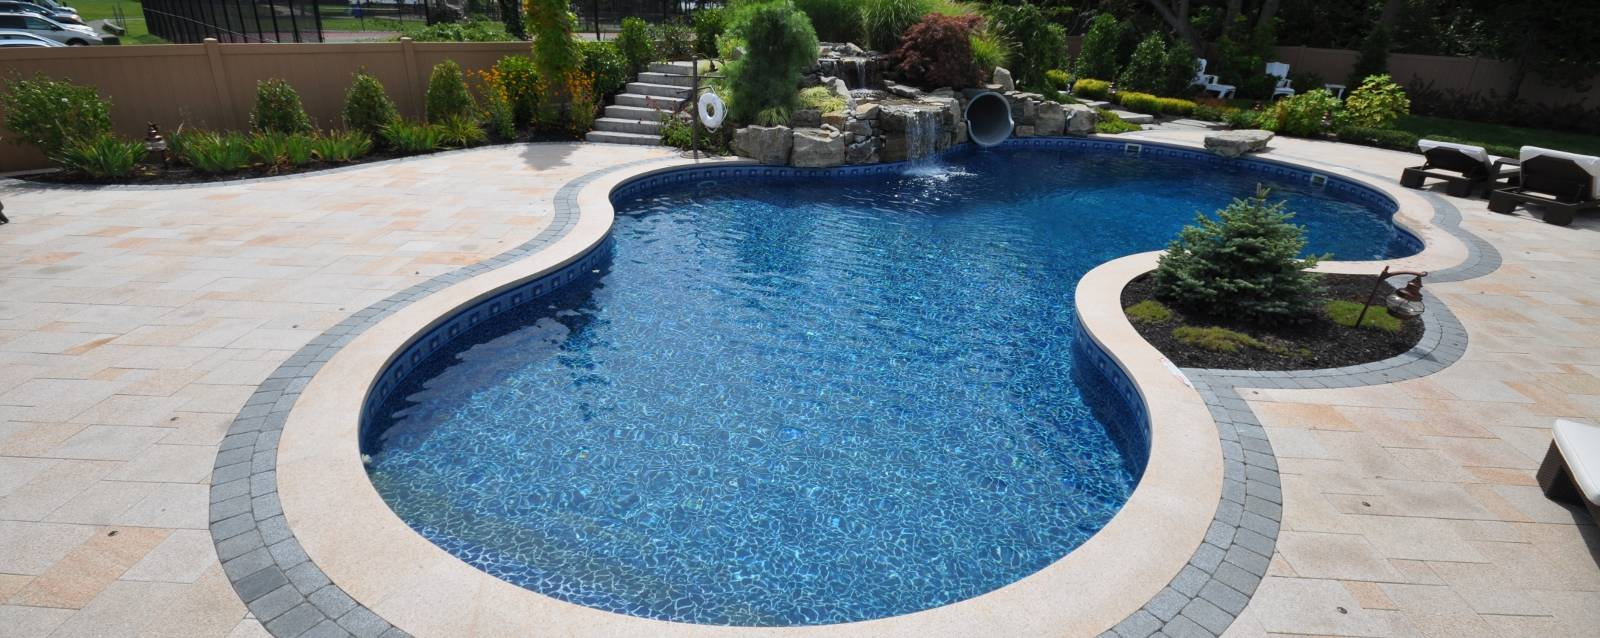 Vinyl Liner Inground Pools Gappsi